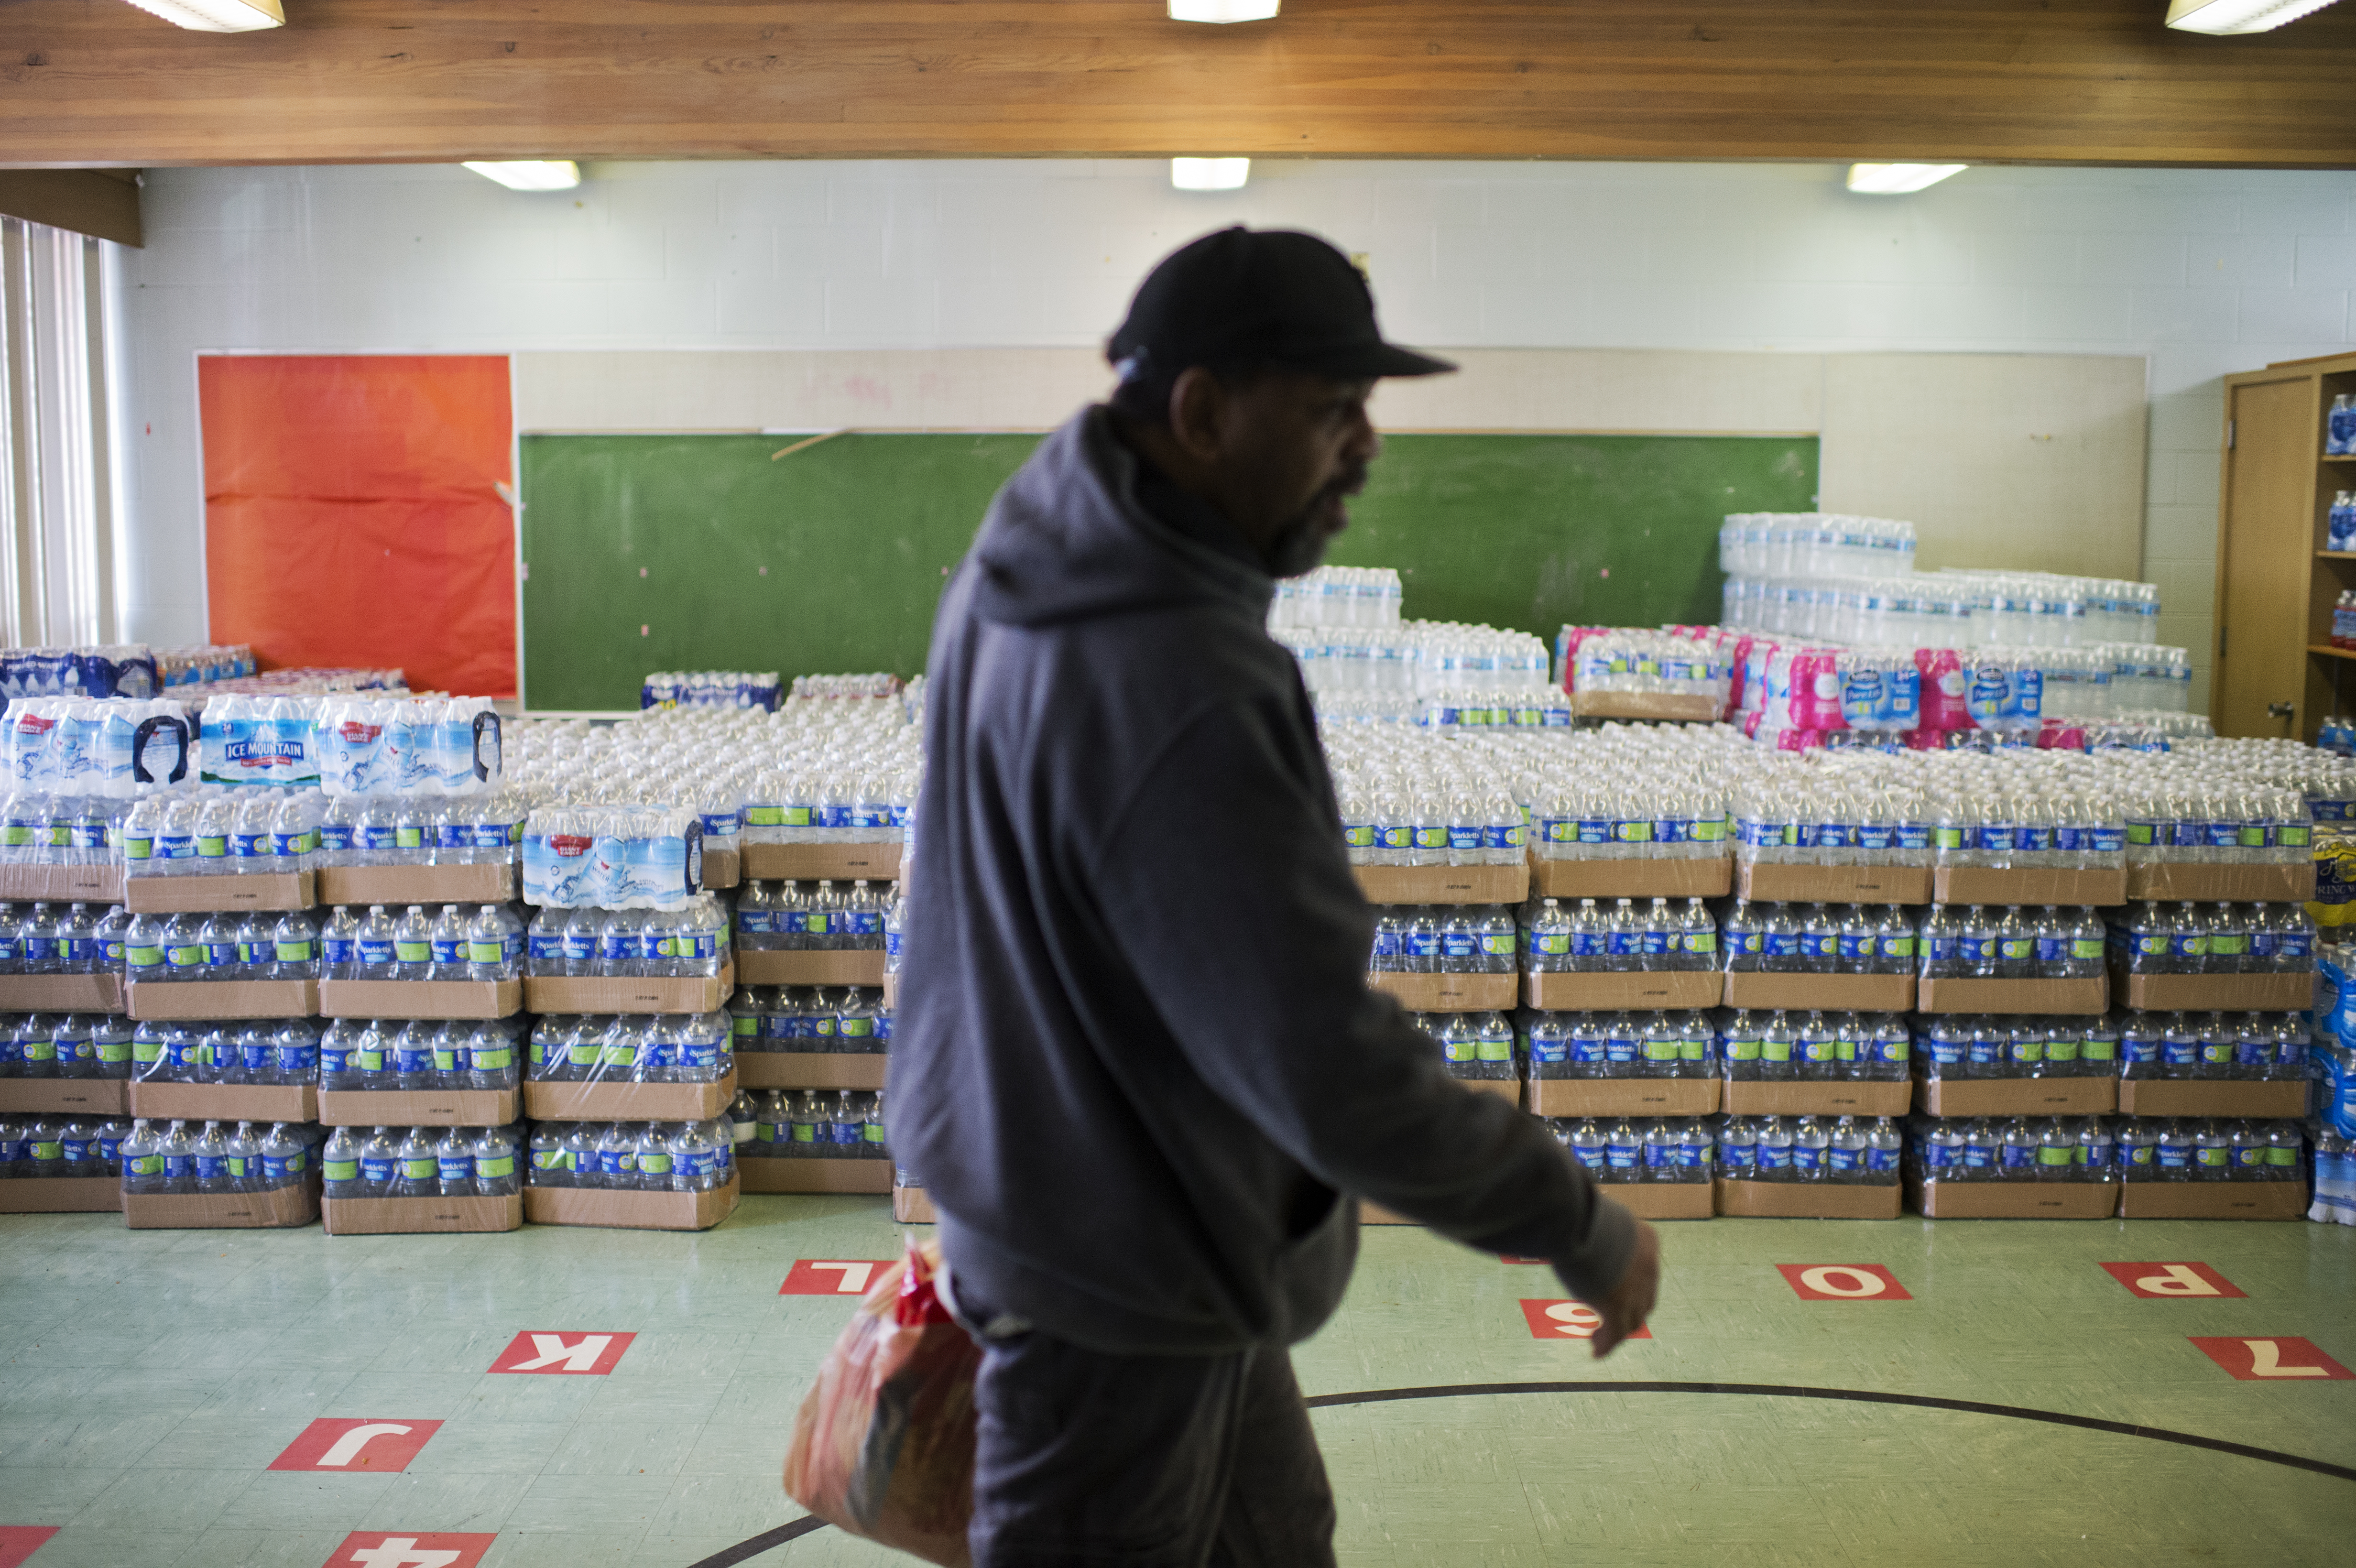 A volunteer walks by cases of bottled water at the St. Mark Baptist Church, that serves as a water distribution area in Flint, Mich., on Feb. 23, 2016.